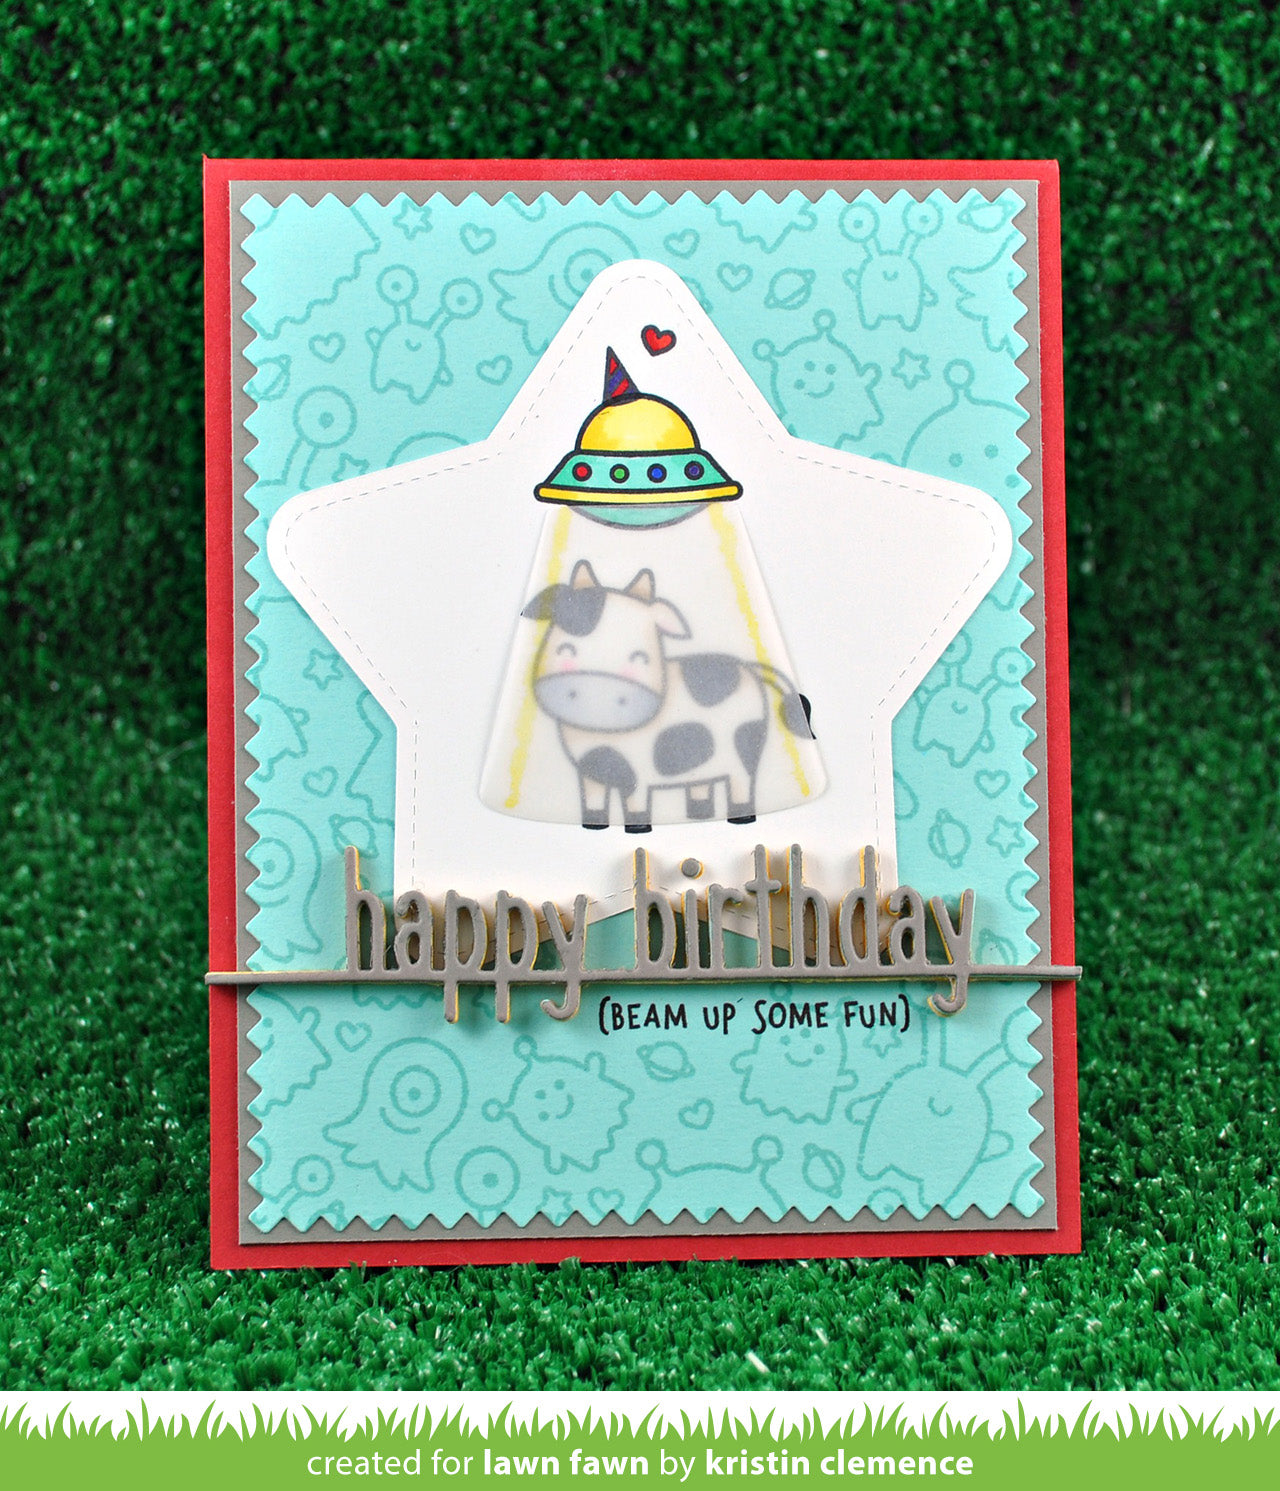 Lawn Fawn Happy Birthday Line Border에 대한 이미지 검색결과